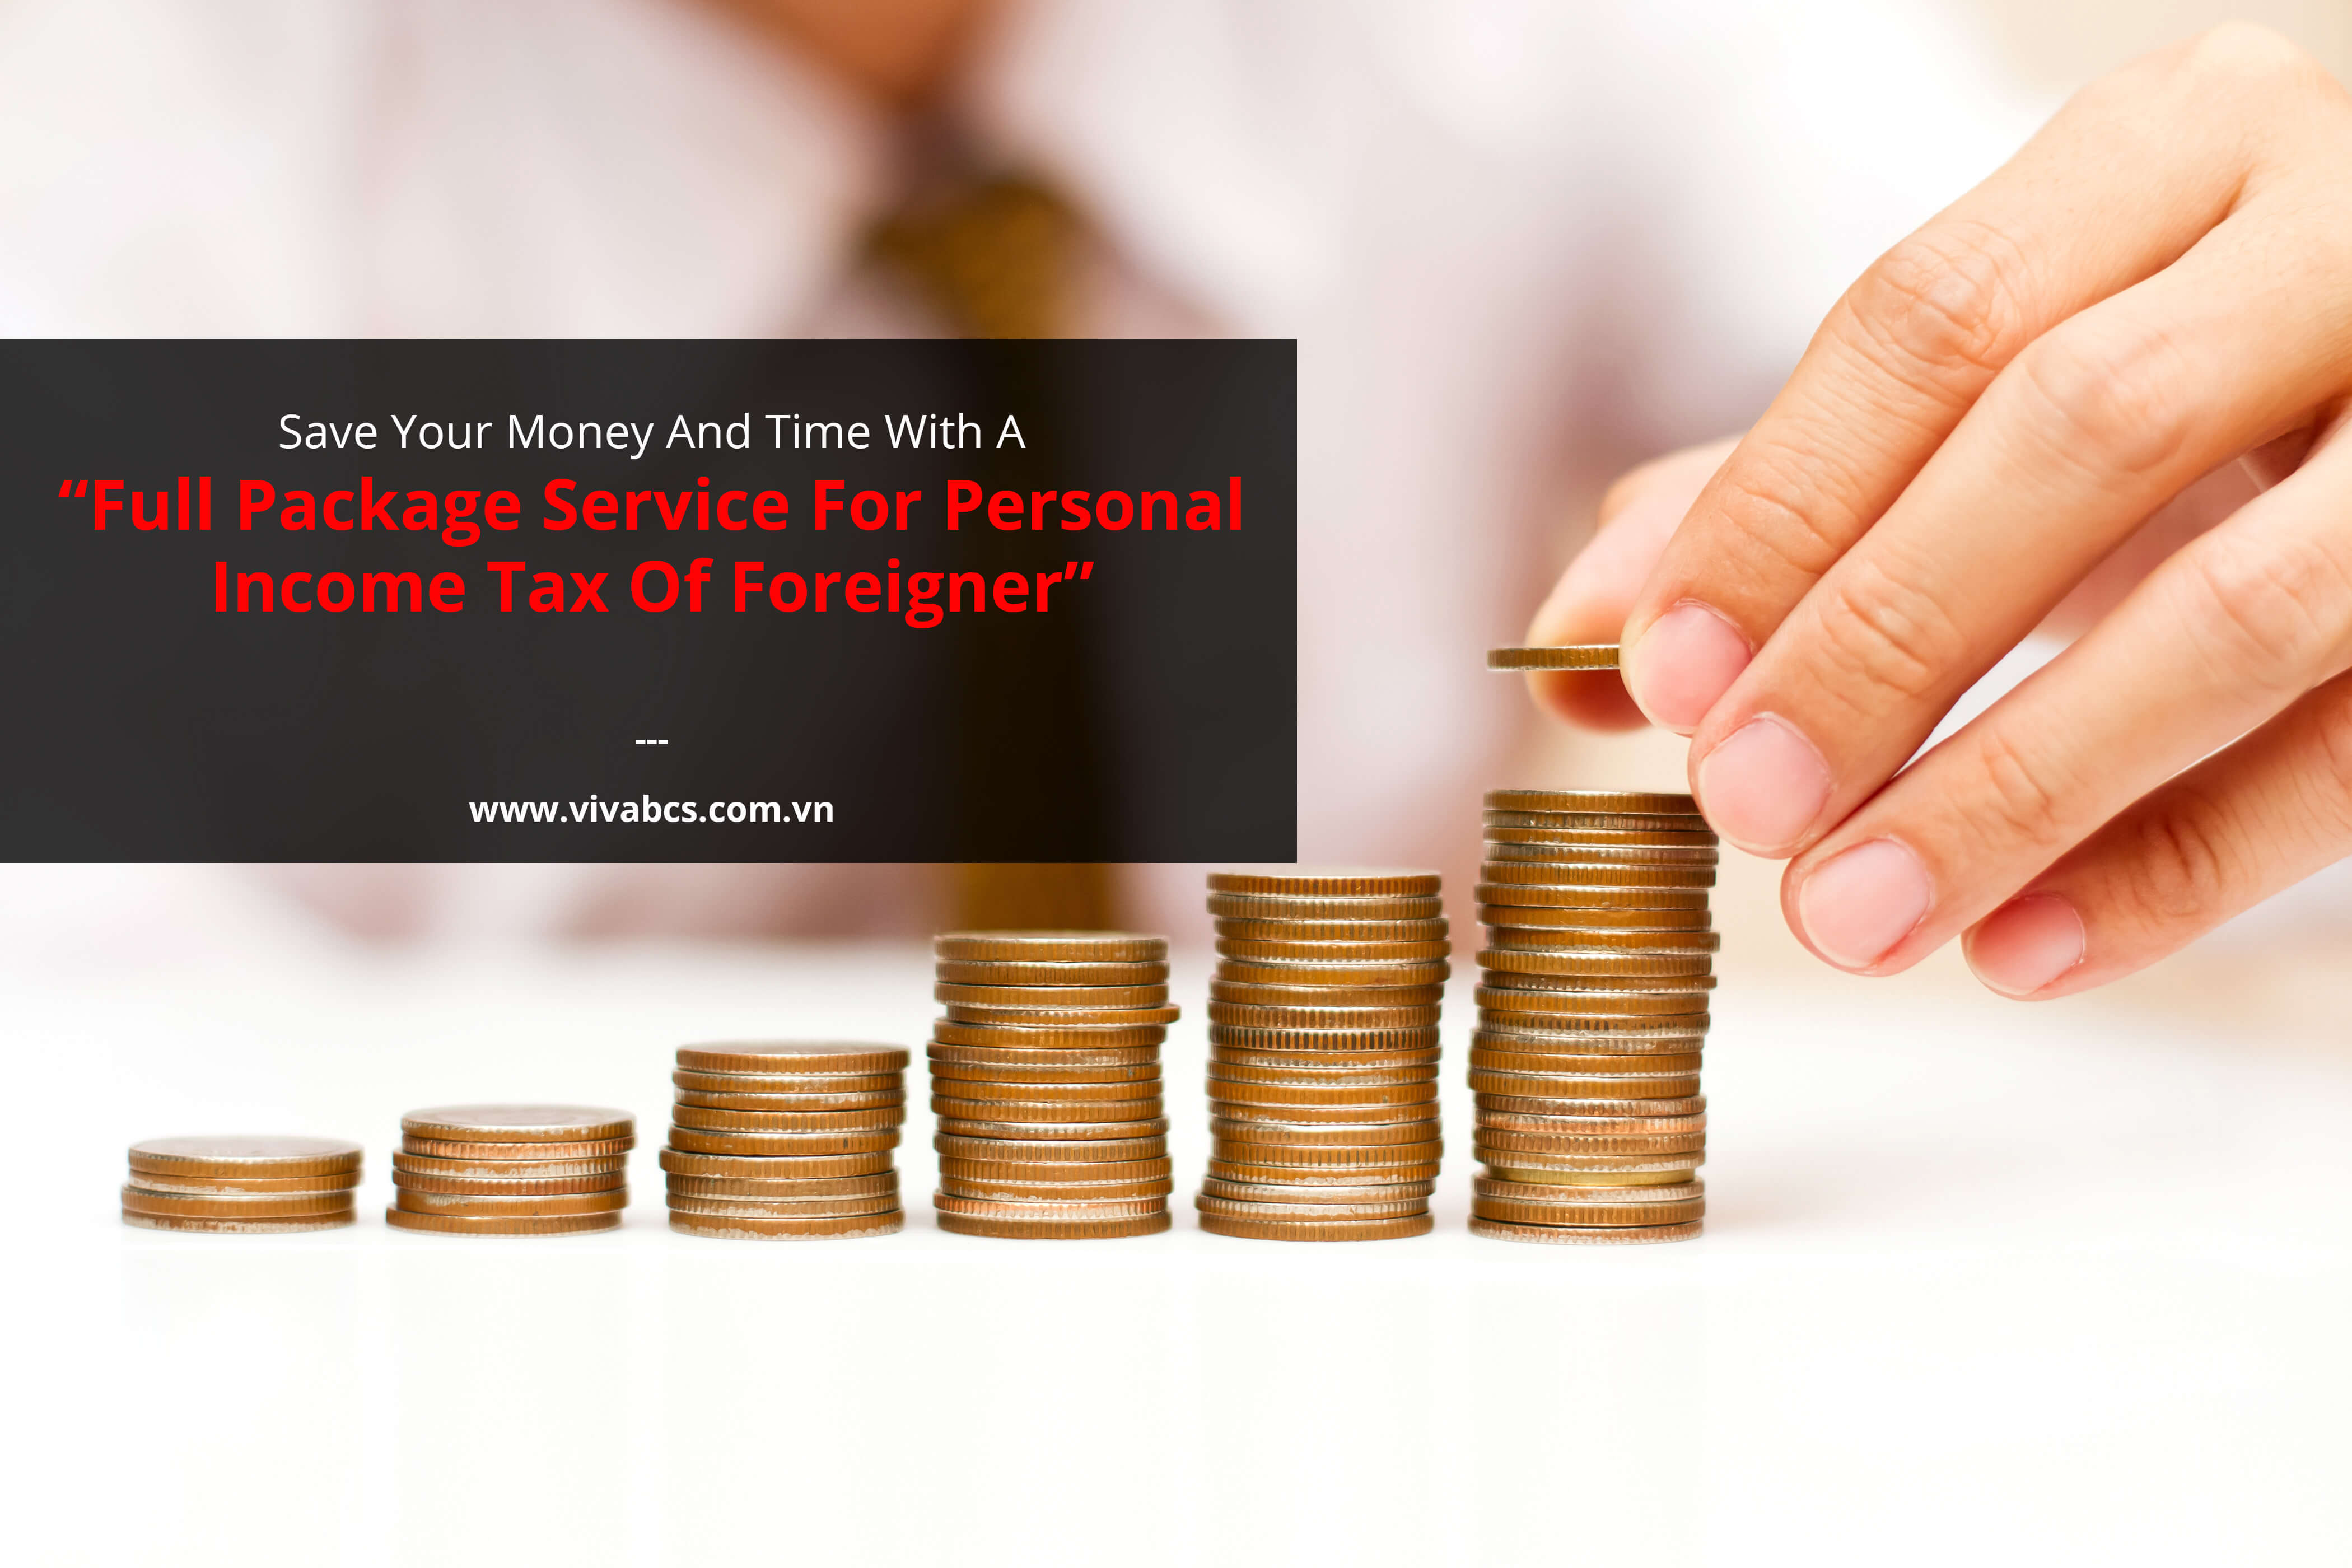 Tax Declaration - Full Package Service For Personal Income Tax Of Expats